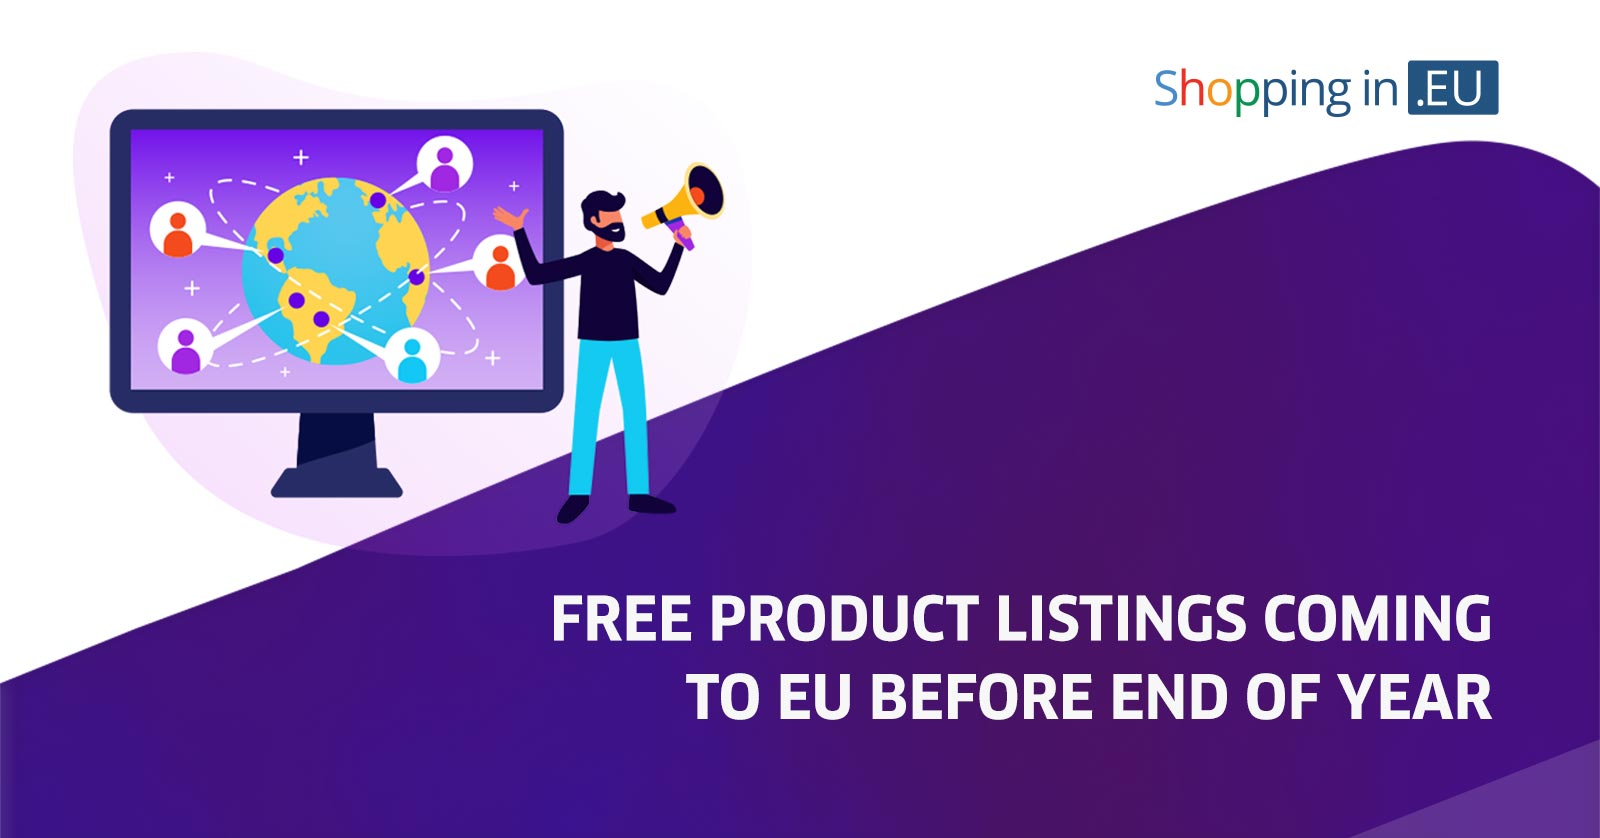 Free product listings coming to EU before end of year